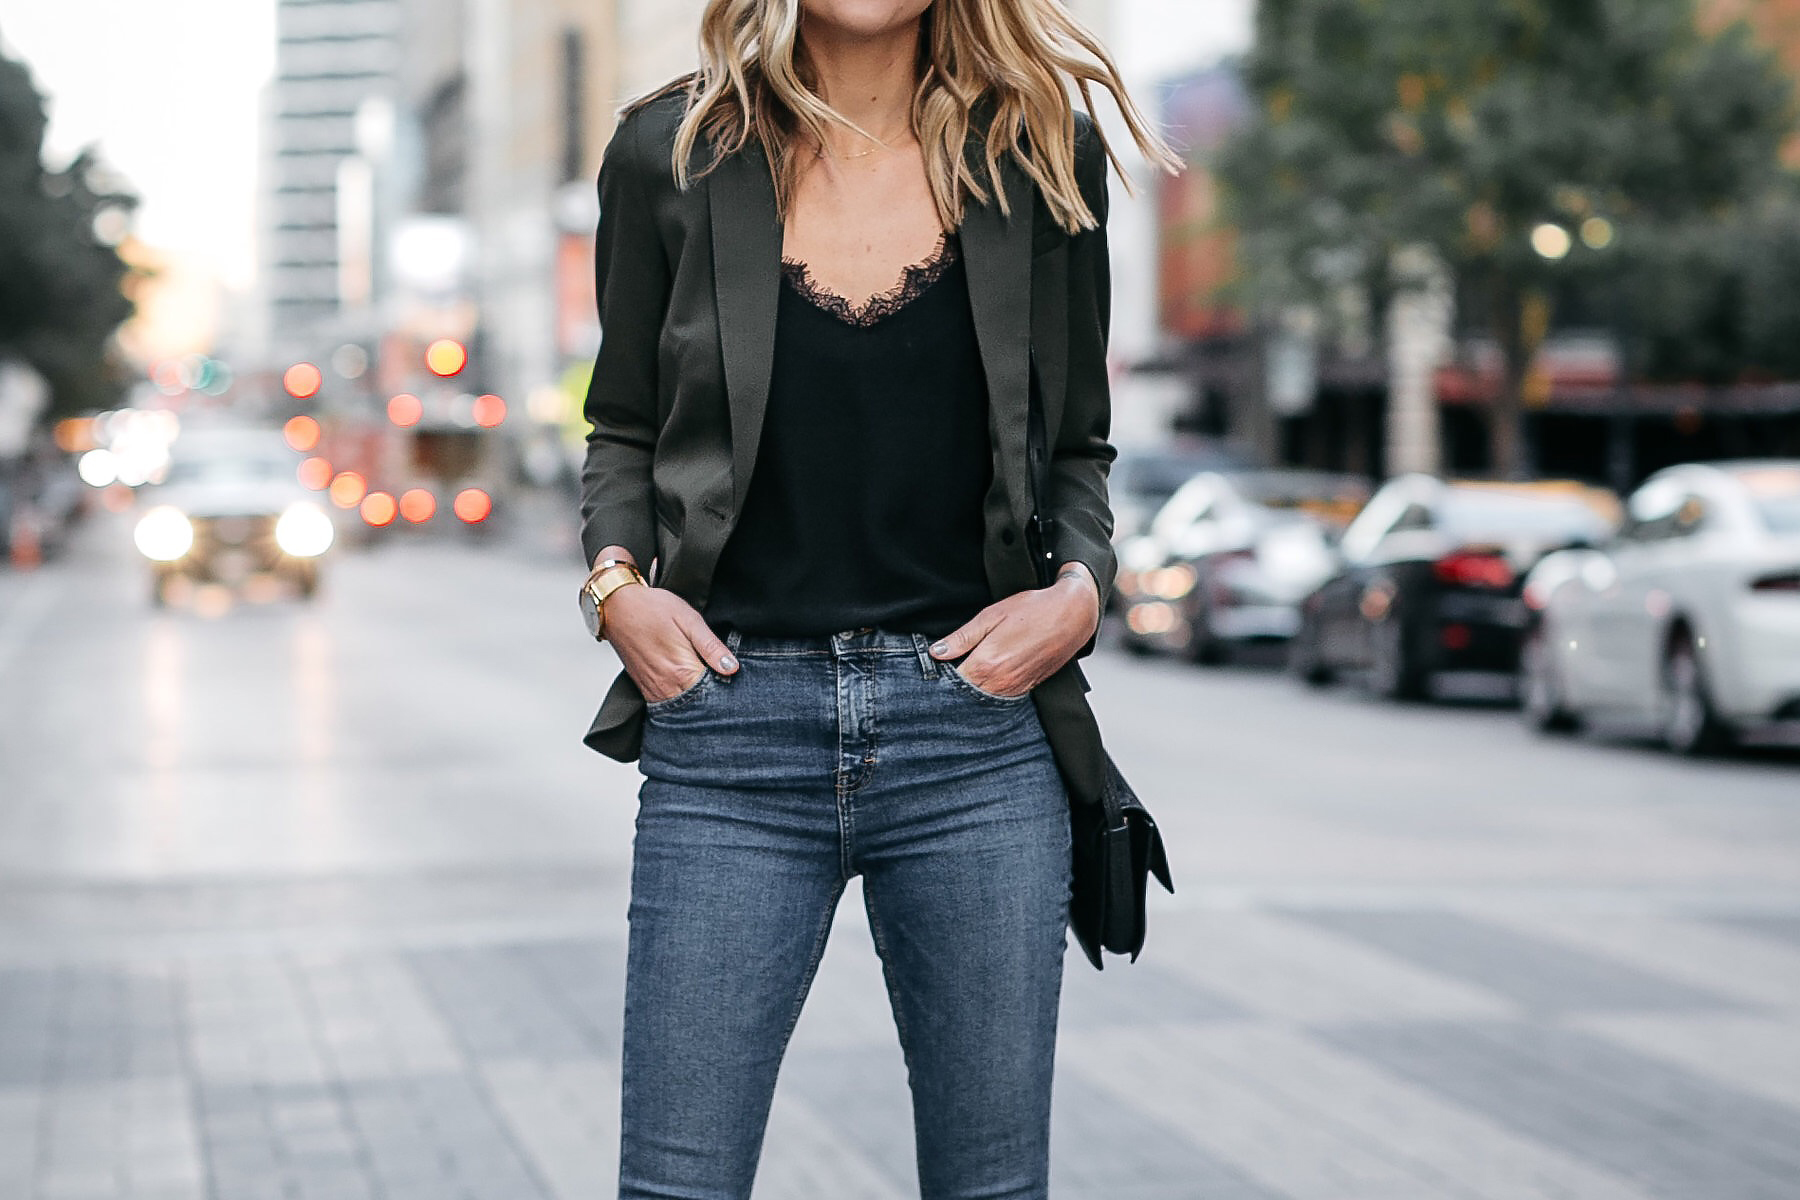 Everlane Olive Green Blazer Anine Bing Black Lace Cami Denim Jeans Fashion Jackson Dallas Blogger Fashion Blogger Street Style